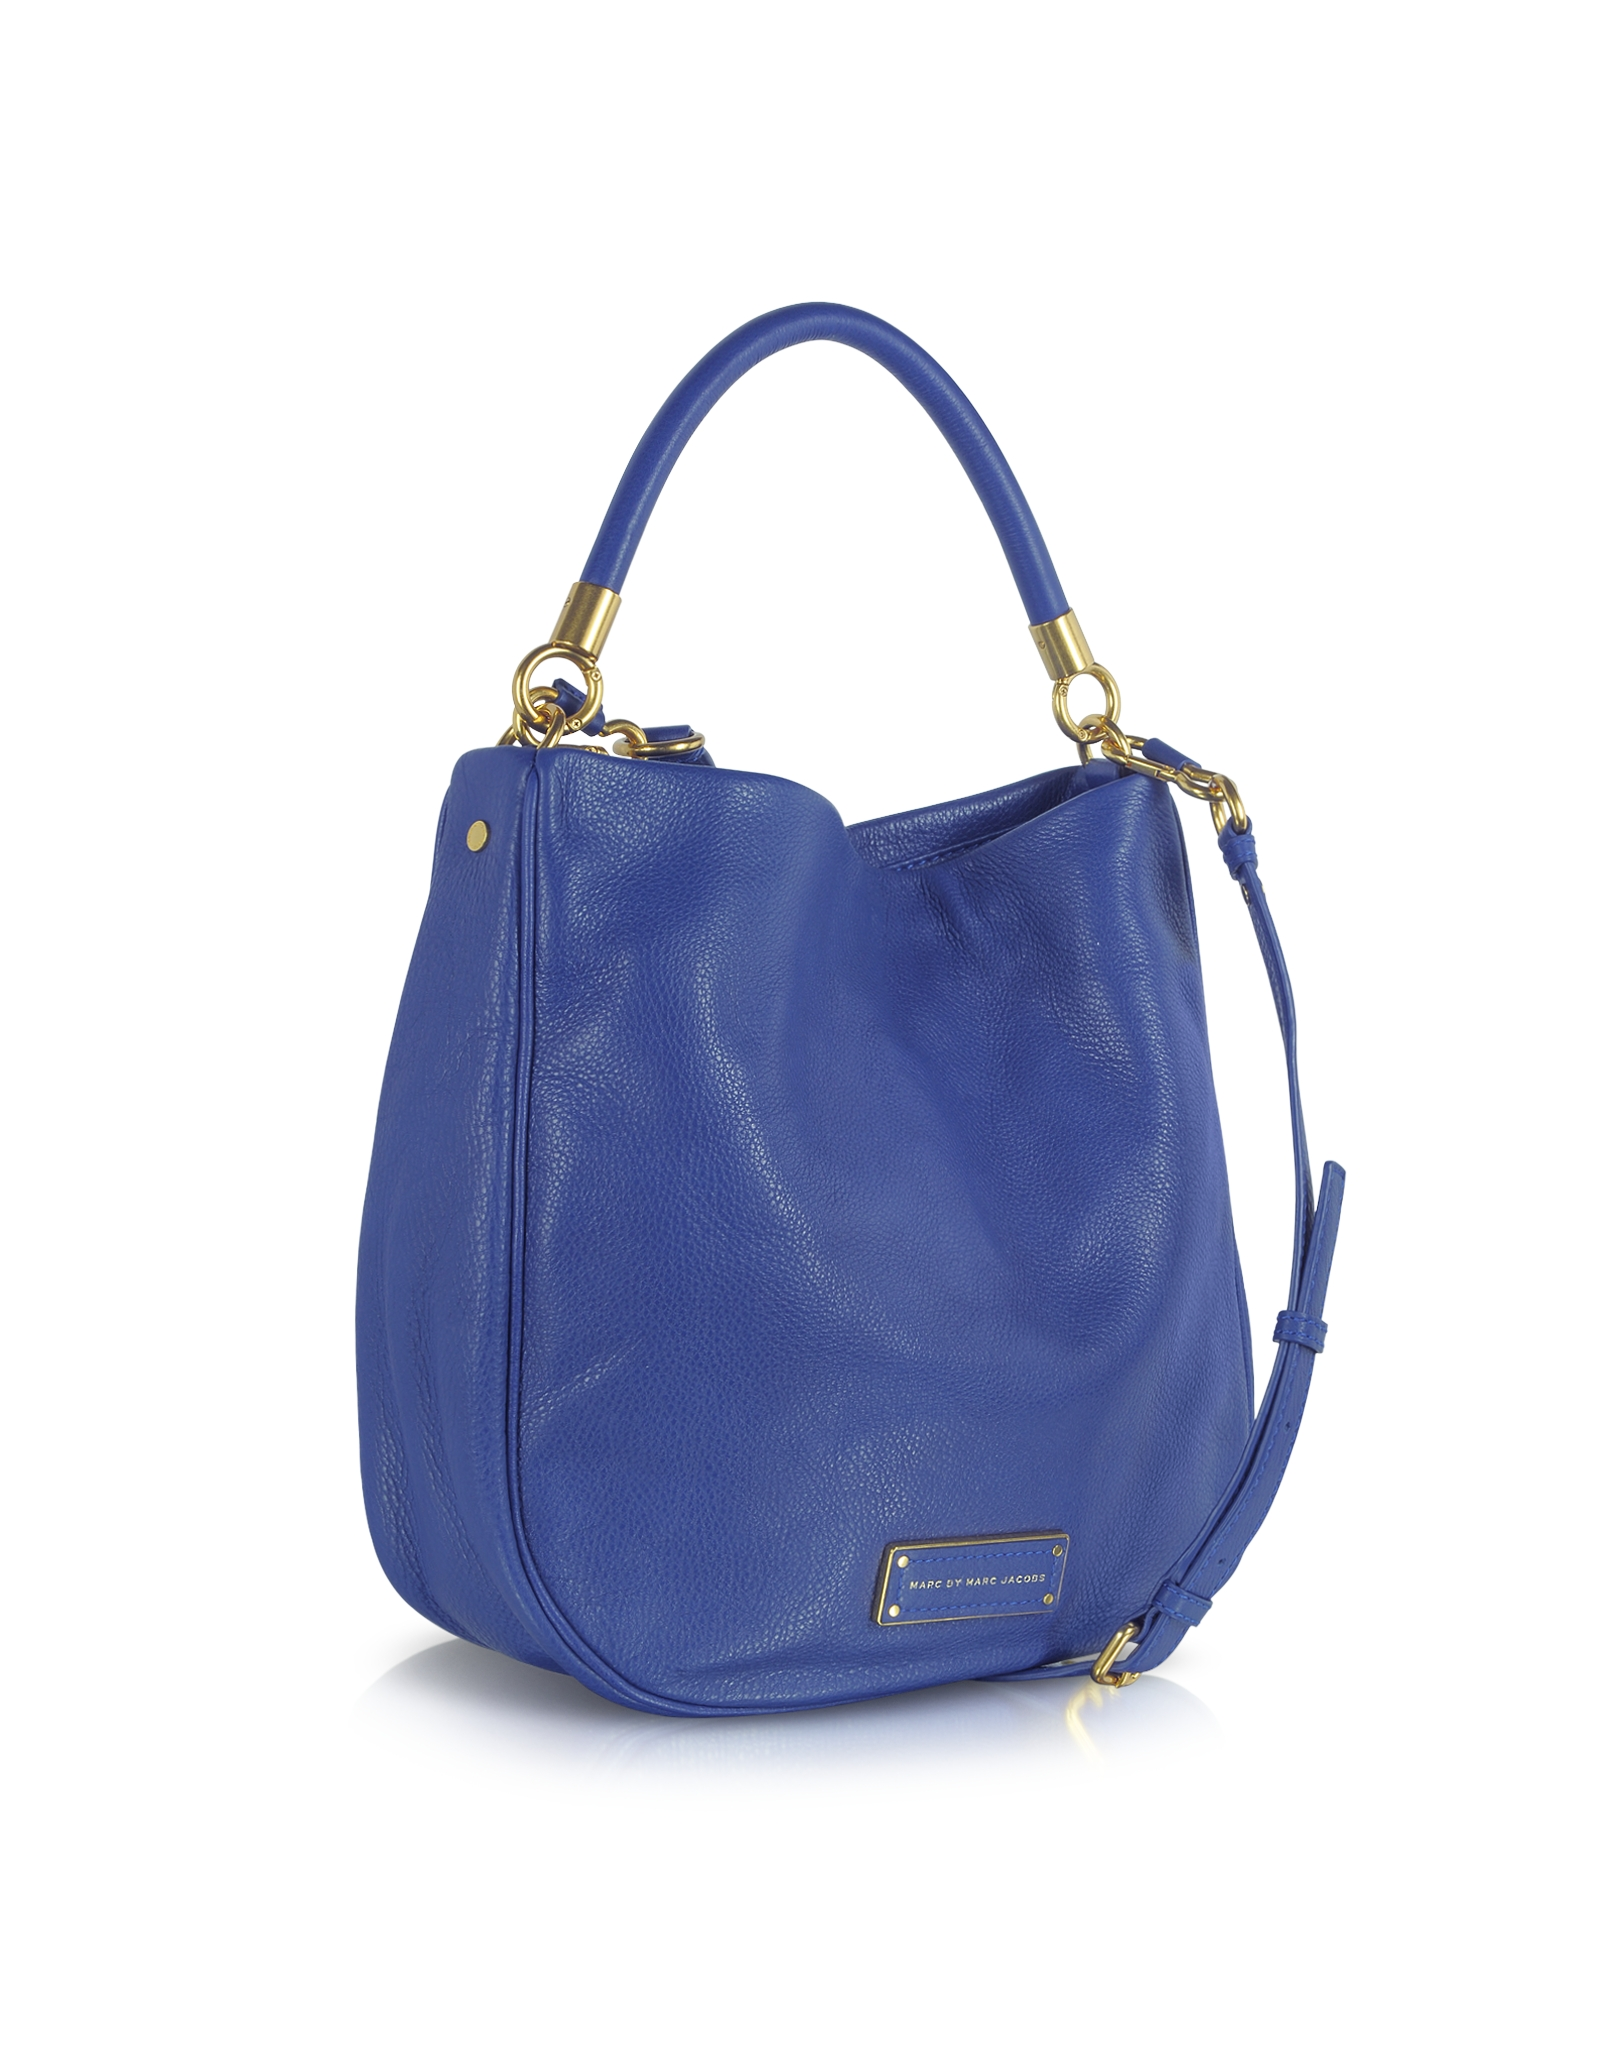 56f48d92ec46 Lyst - Marc By Marc Jacobs Too Hot To Handle Bauhaus Blue Hobo Bag ...